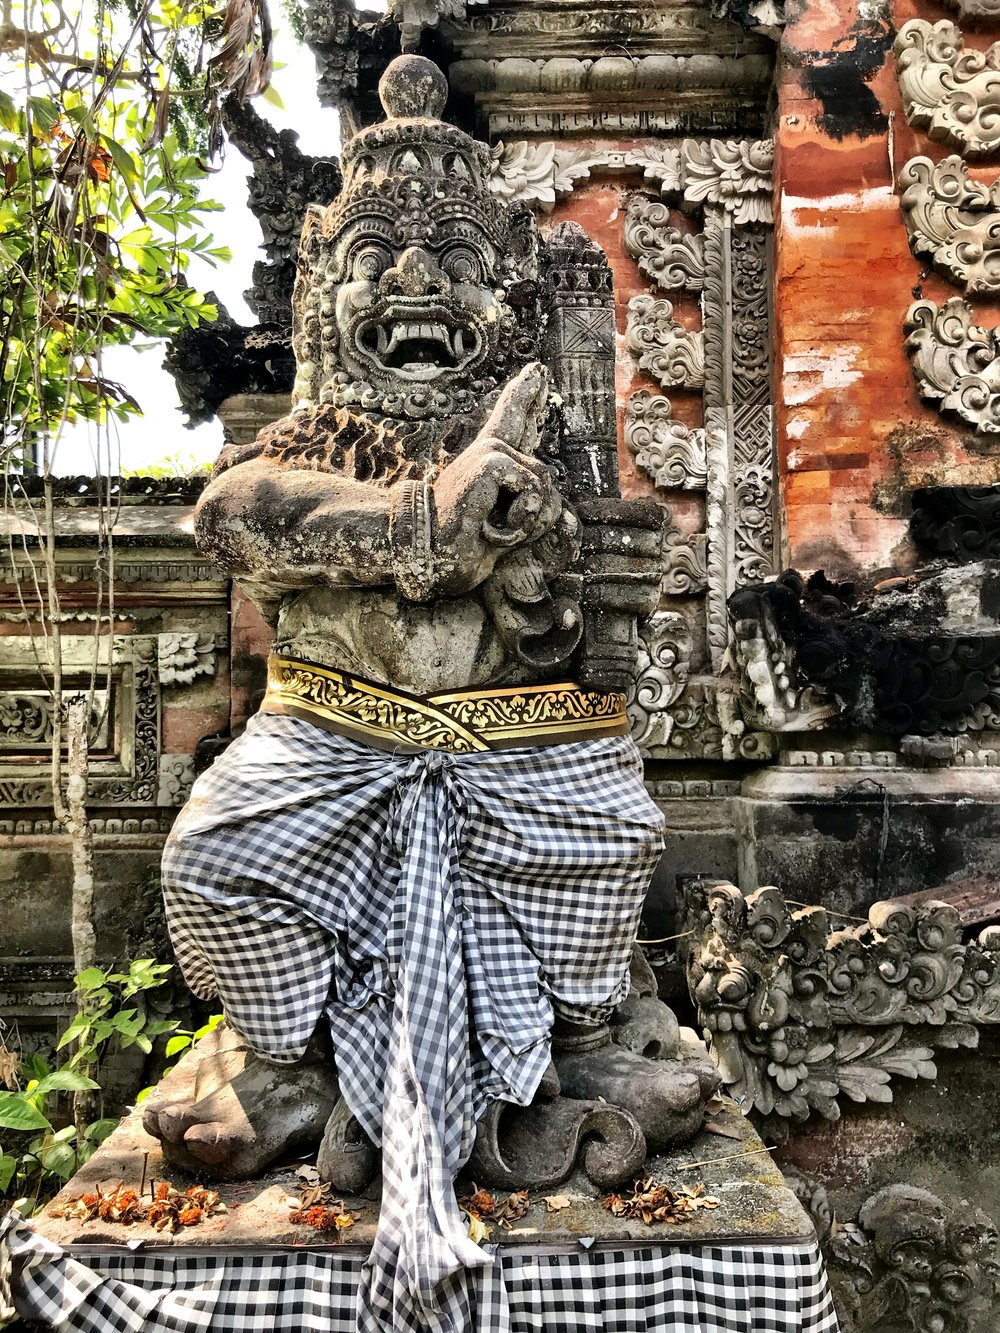 Many temple statues get adorned in sarongs